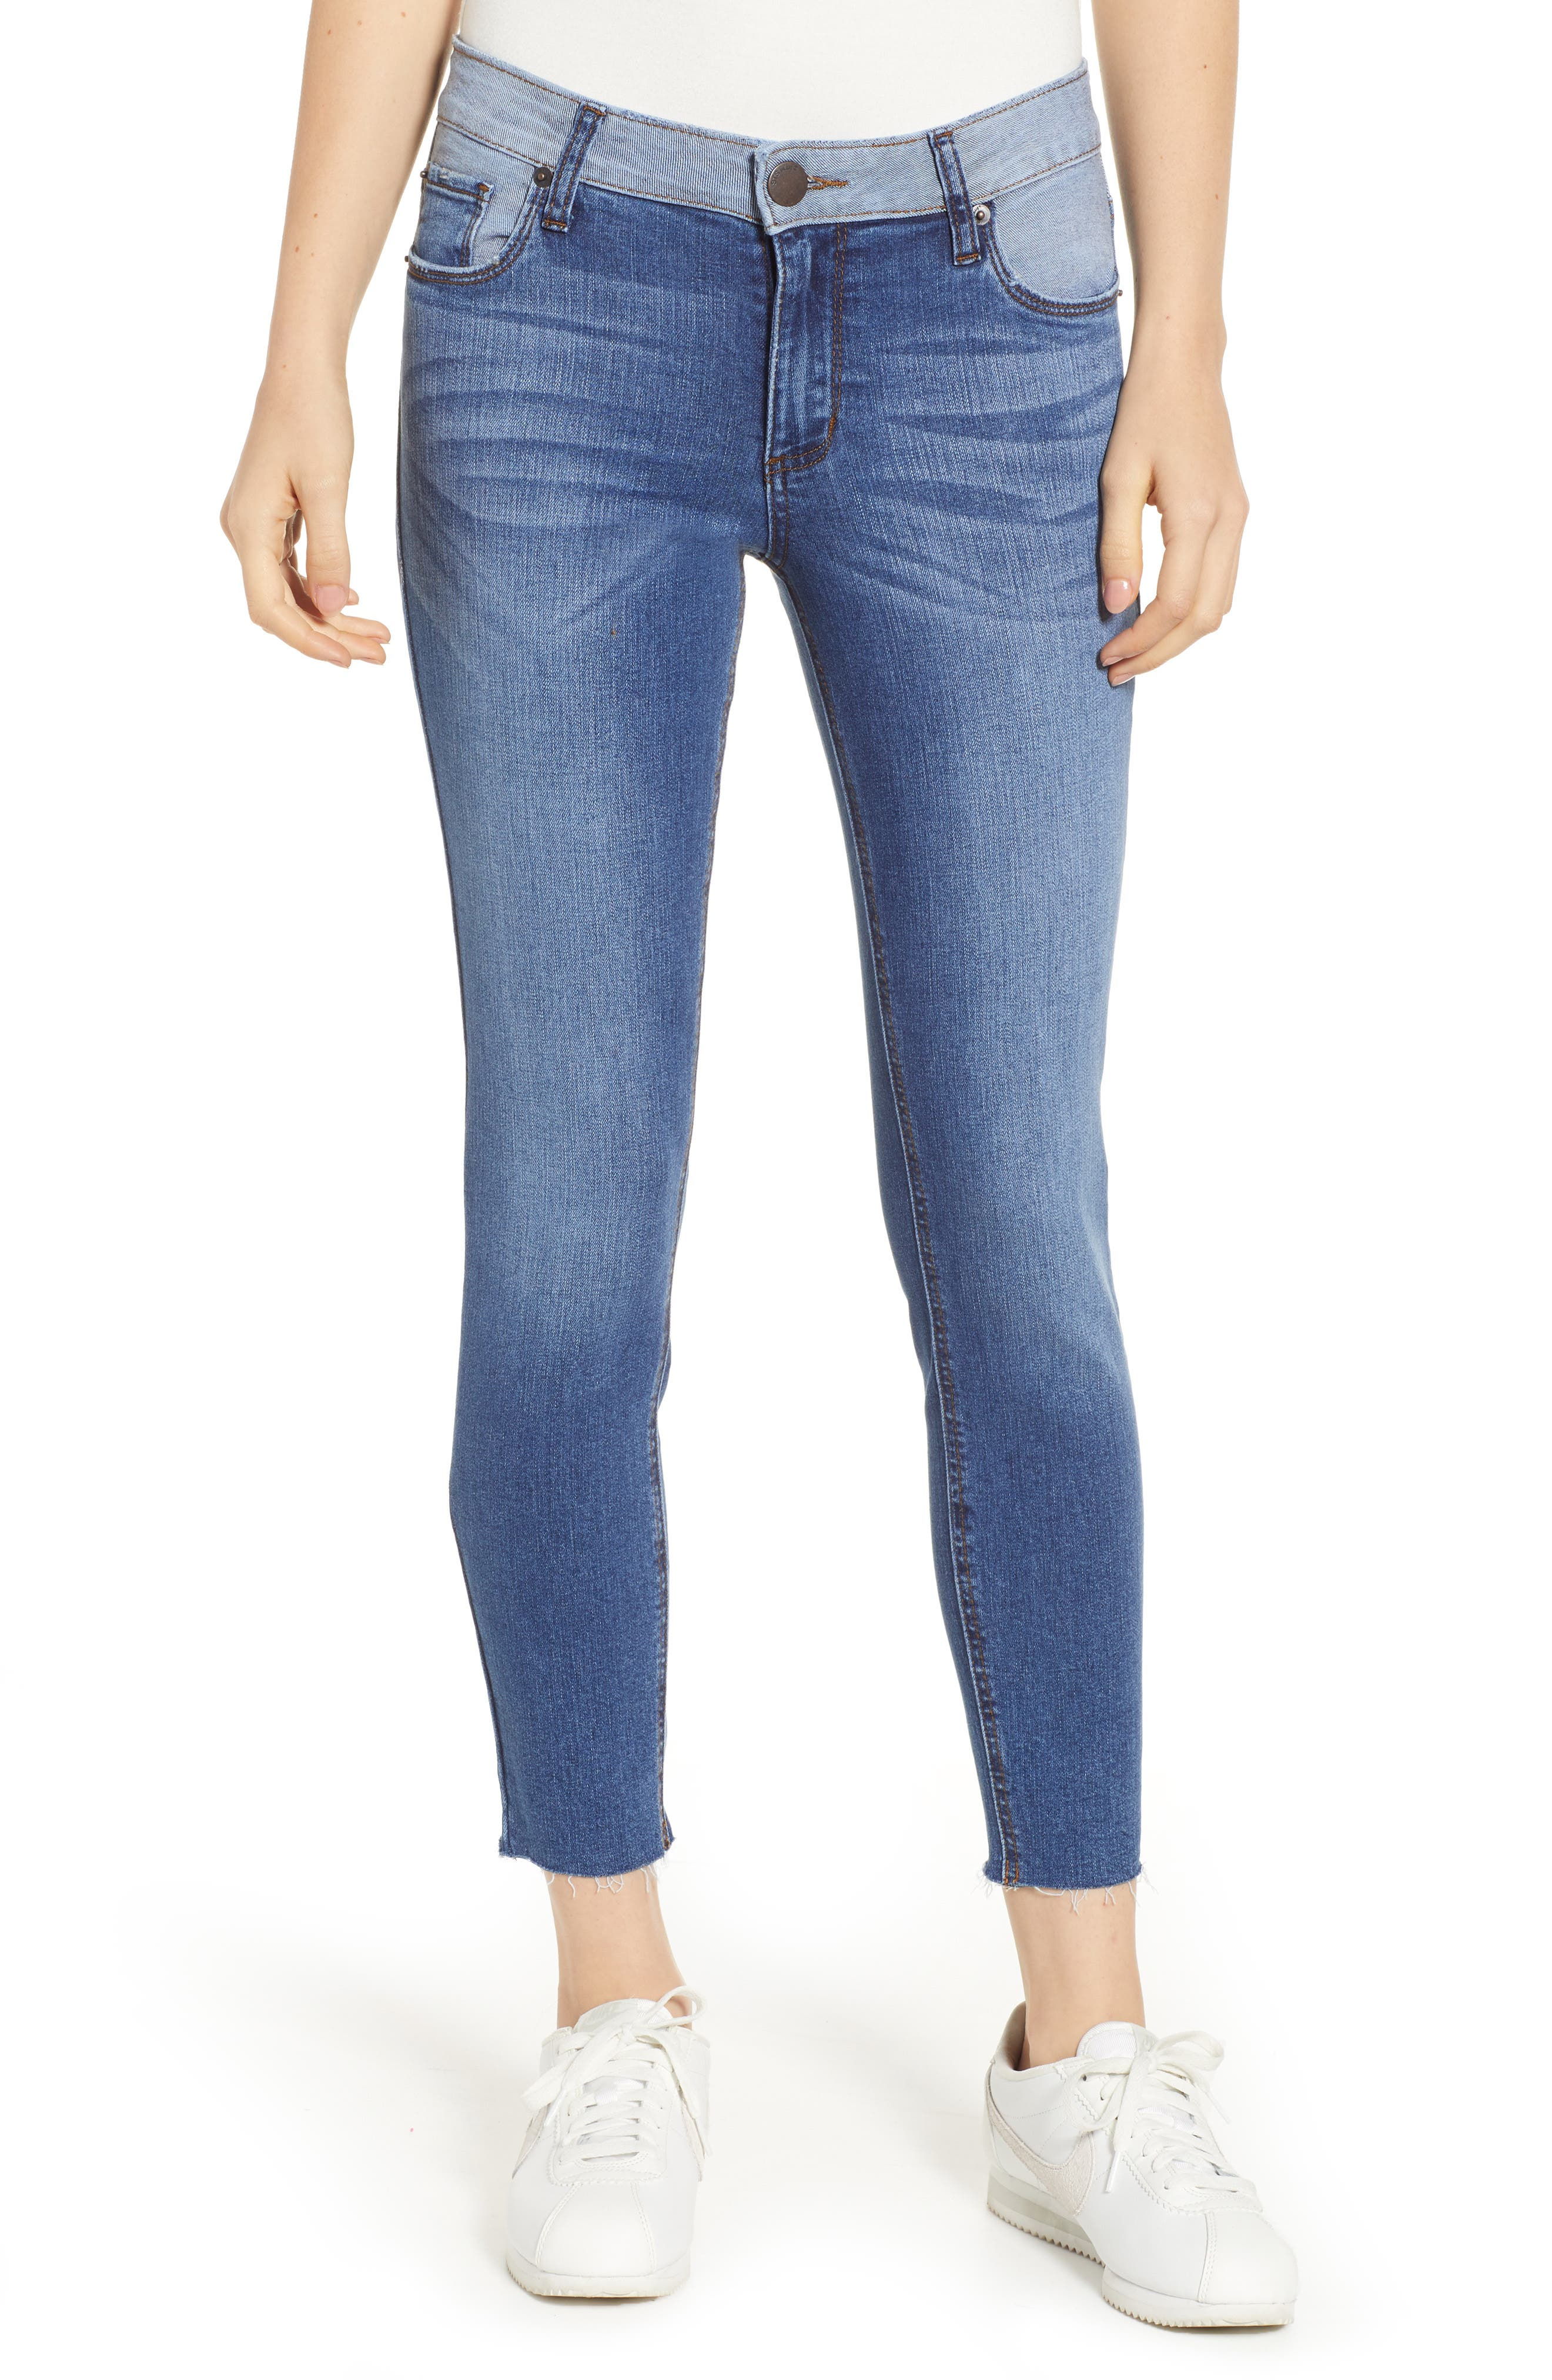 SWAT FAME Women's STS Blue Contrast Waistband Crop Skinny Jeans